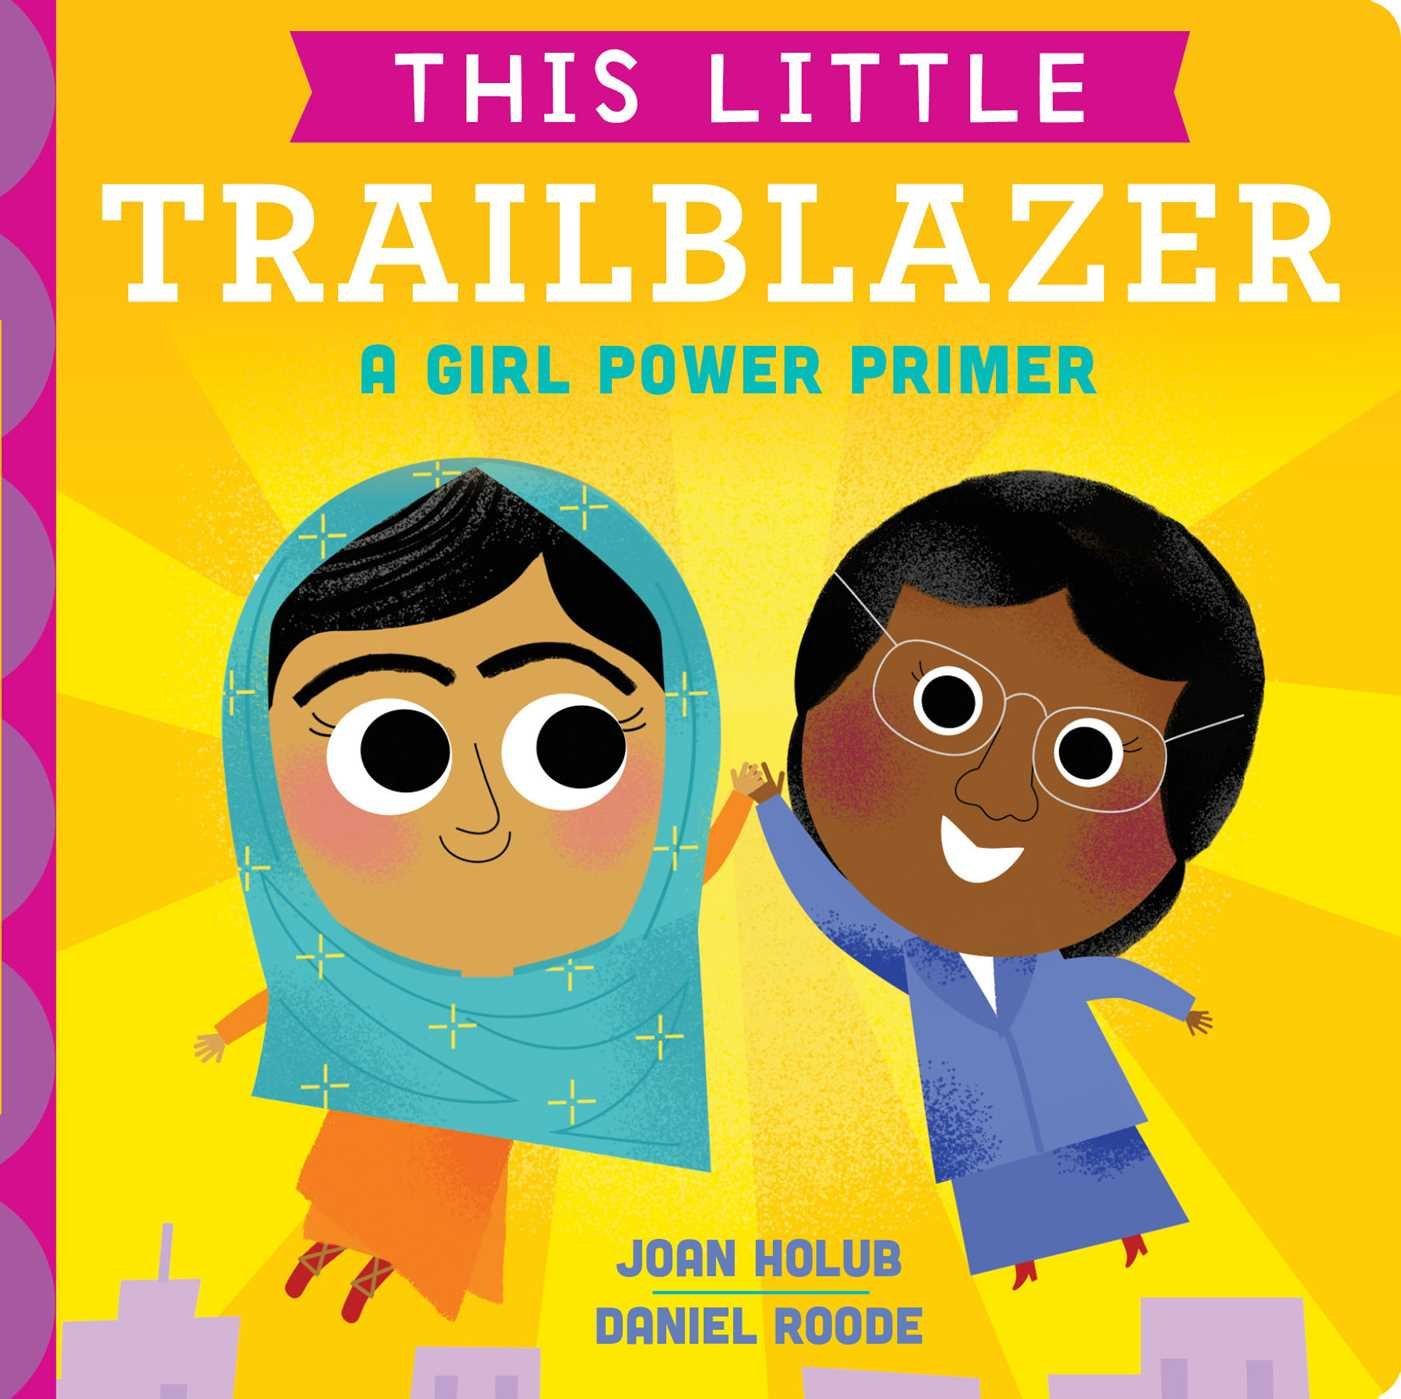 22. This Little Trailblazer - This board book introduces little ones to trailblazing women from all walks of life and corners of the world. Readers meet Ada Lovelace, Florence Nightingale, Coco Chanel, Rosa Parks, Maria Tallchief, Wilma Rudolph, Sonia Sotomayor, Ruby Bridges, Maya Lin, and Malala Yousafzai.Paving the wayto a future that's bright.Helping the worldwith their skills, smarts, and might. Little trailblazers cause great big changes.